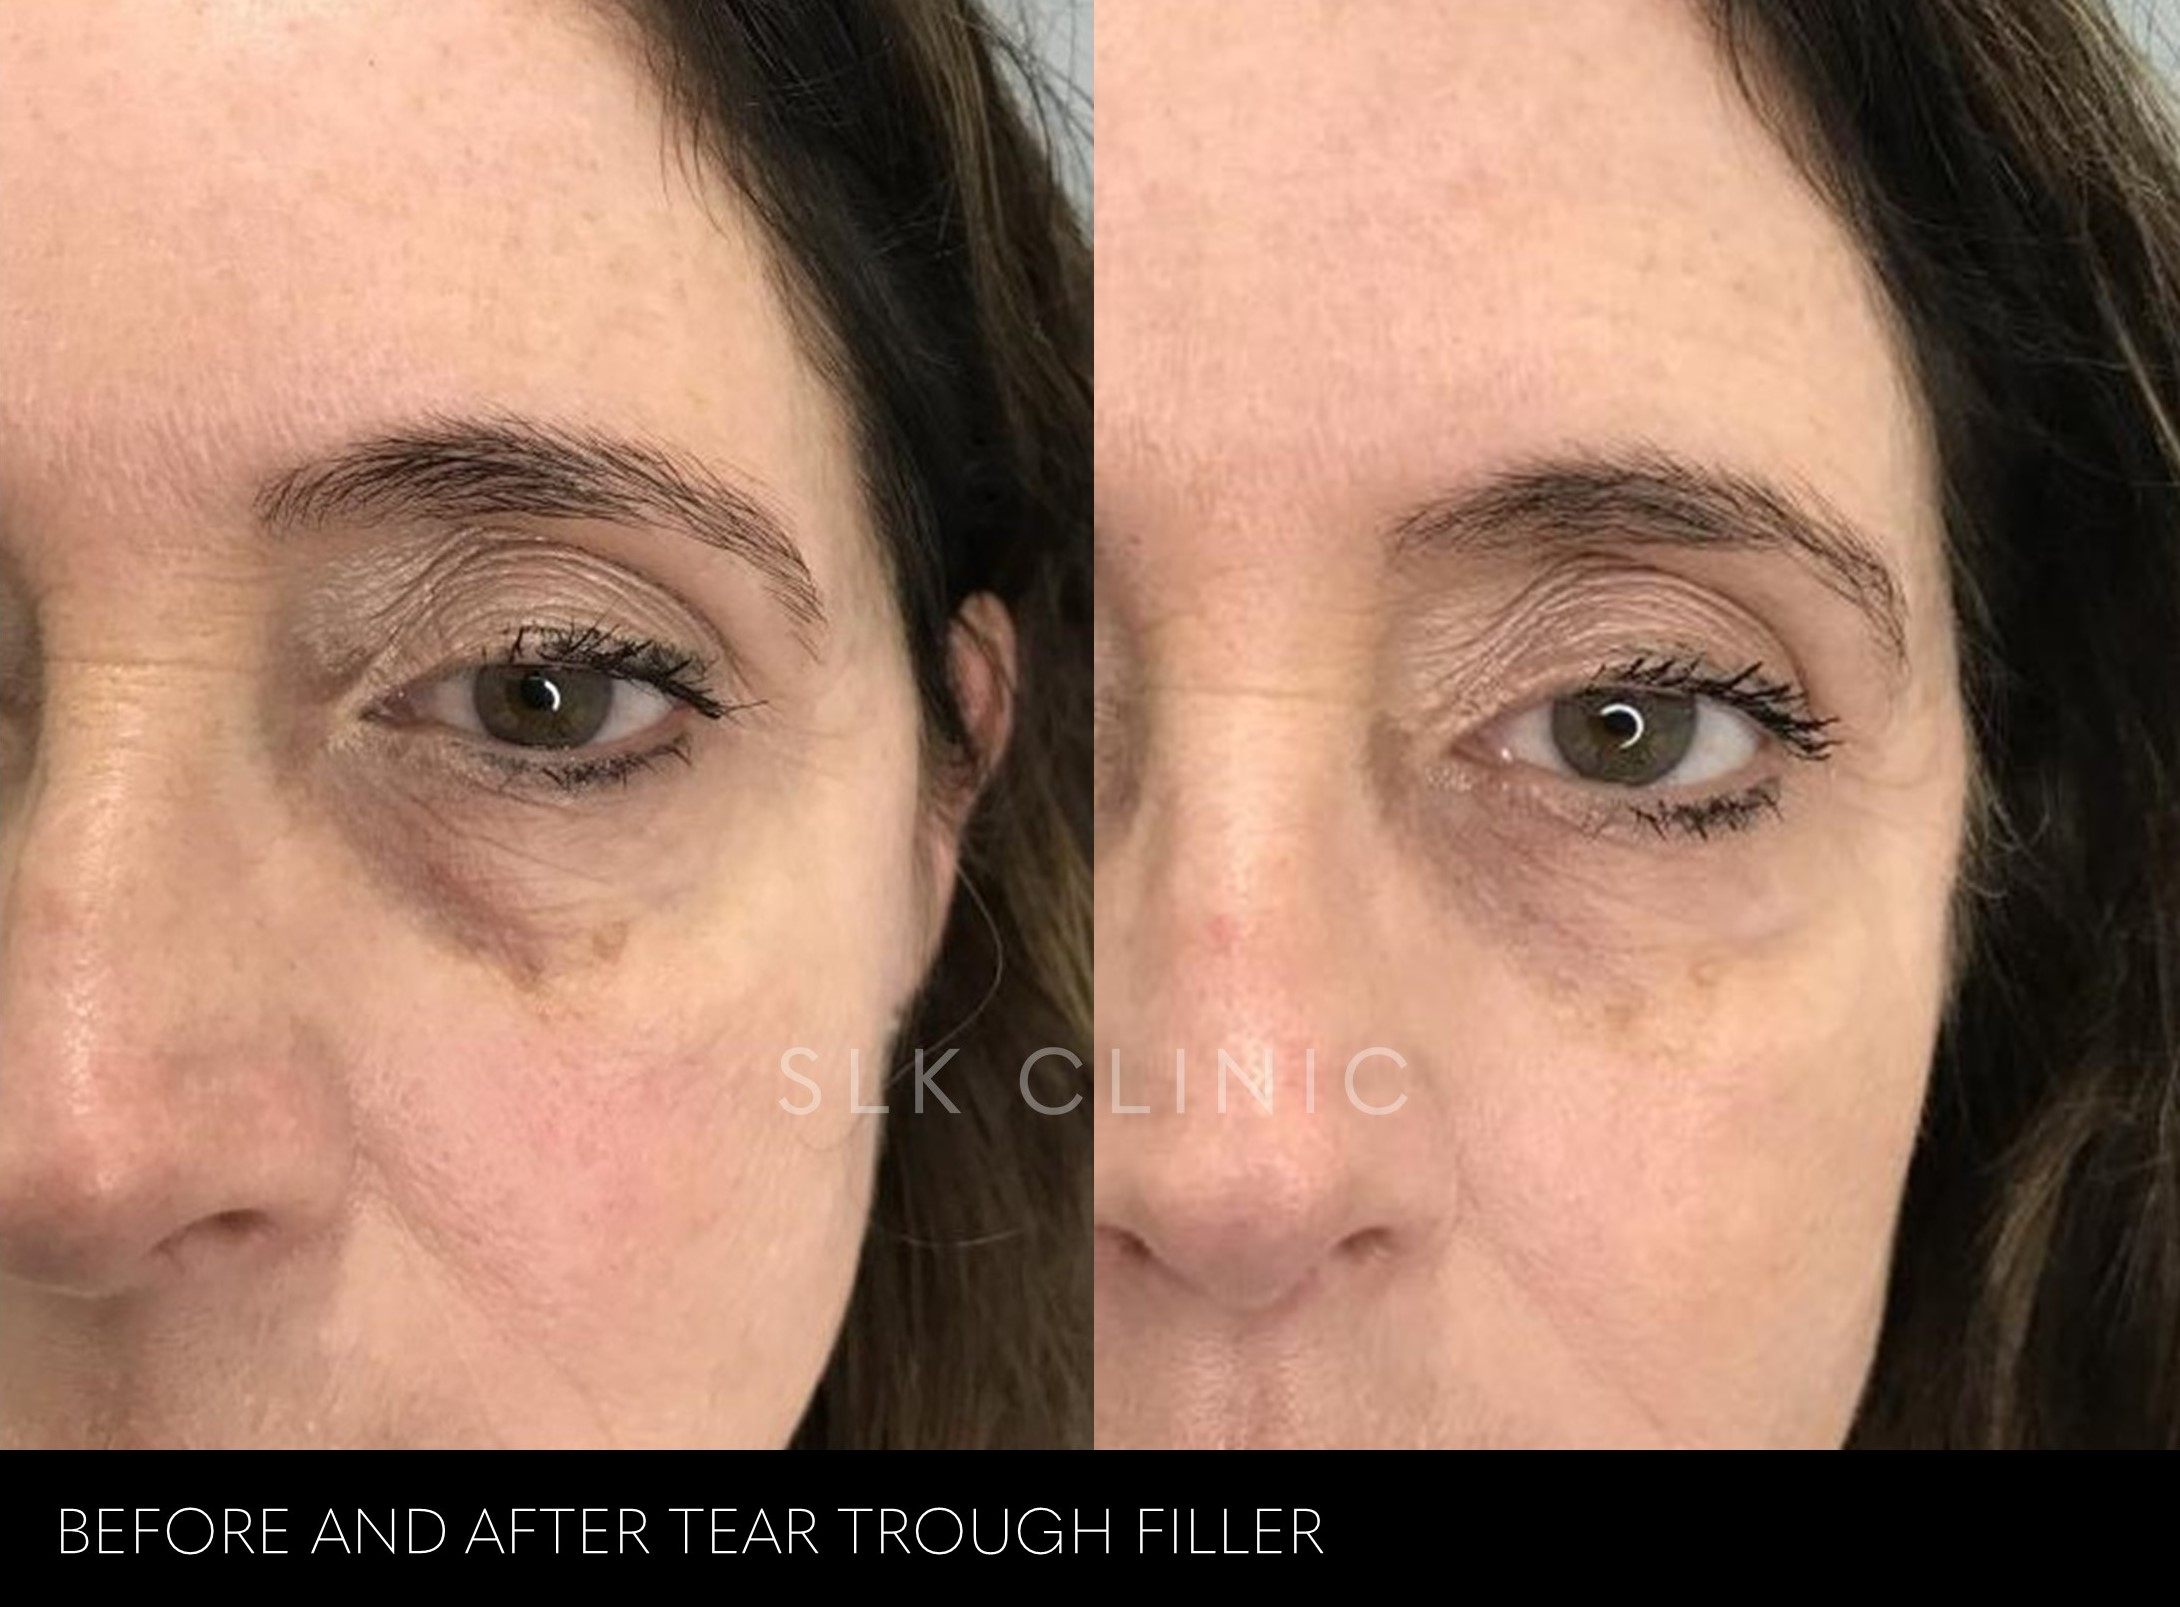 before and after photo tear trough under eye circle filler nashville woman